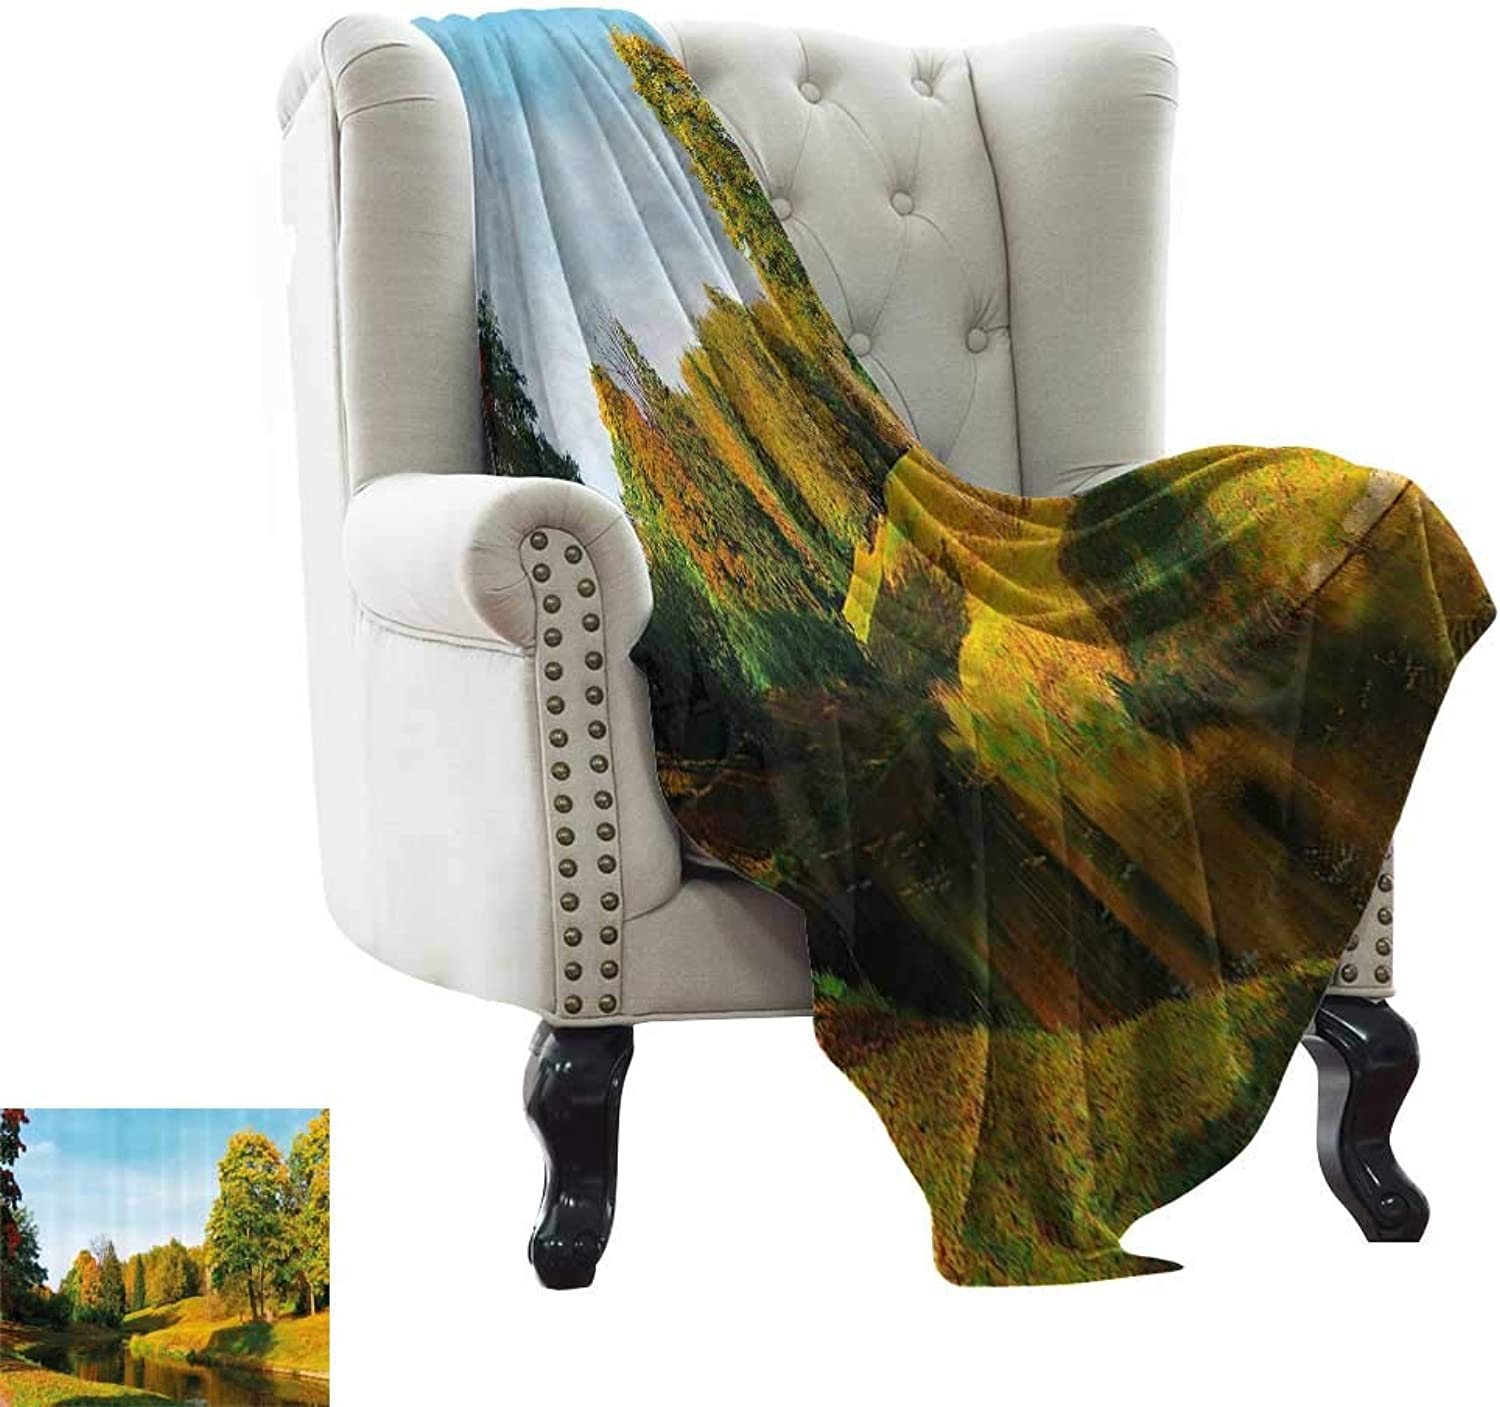 RenteriaDecor Landscape,Bed Sheet Scenery View Natural Forest Park with Trees and River Photo Image 70 x50  Super Soft Boys Warm Blanket Marigold and Olive Green